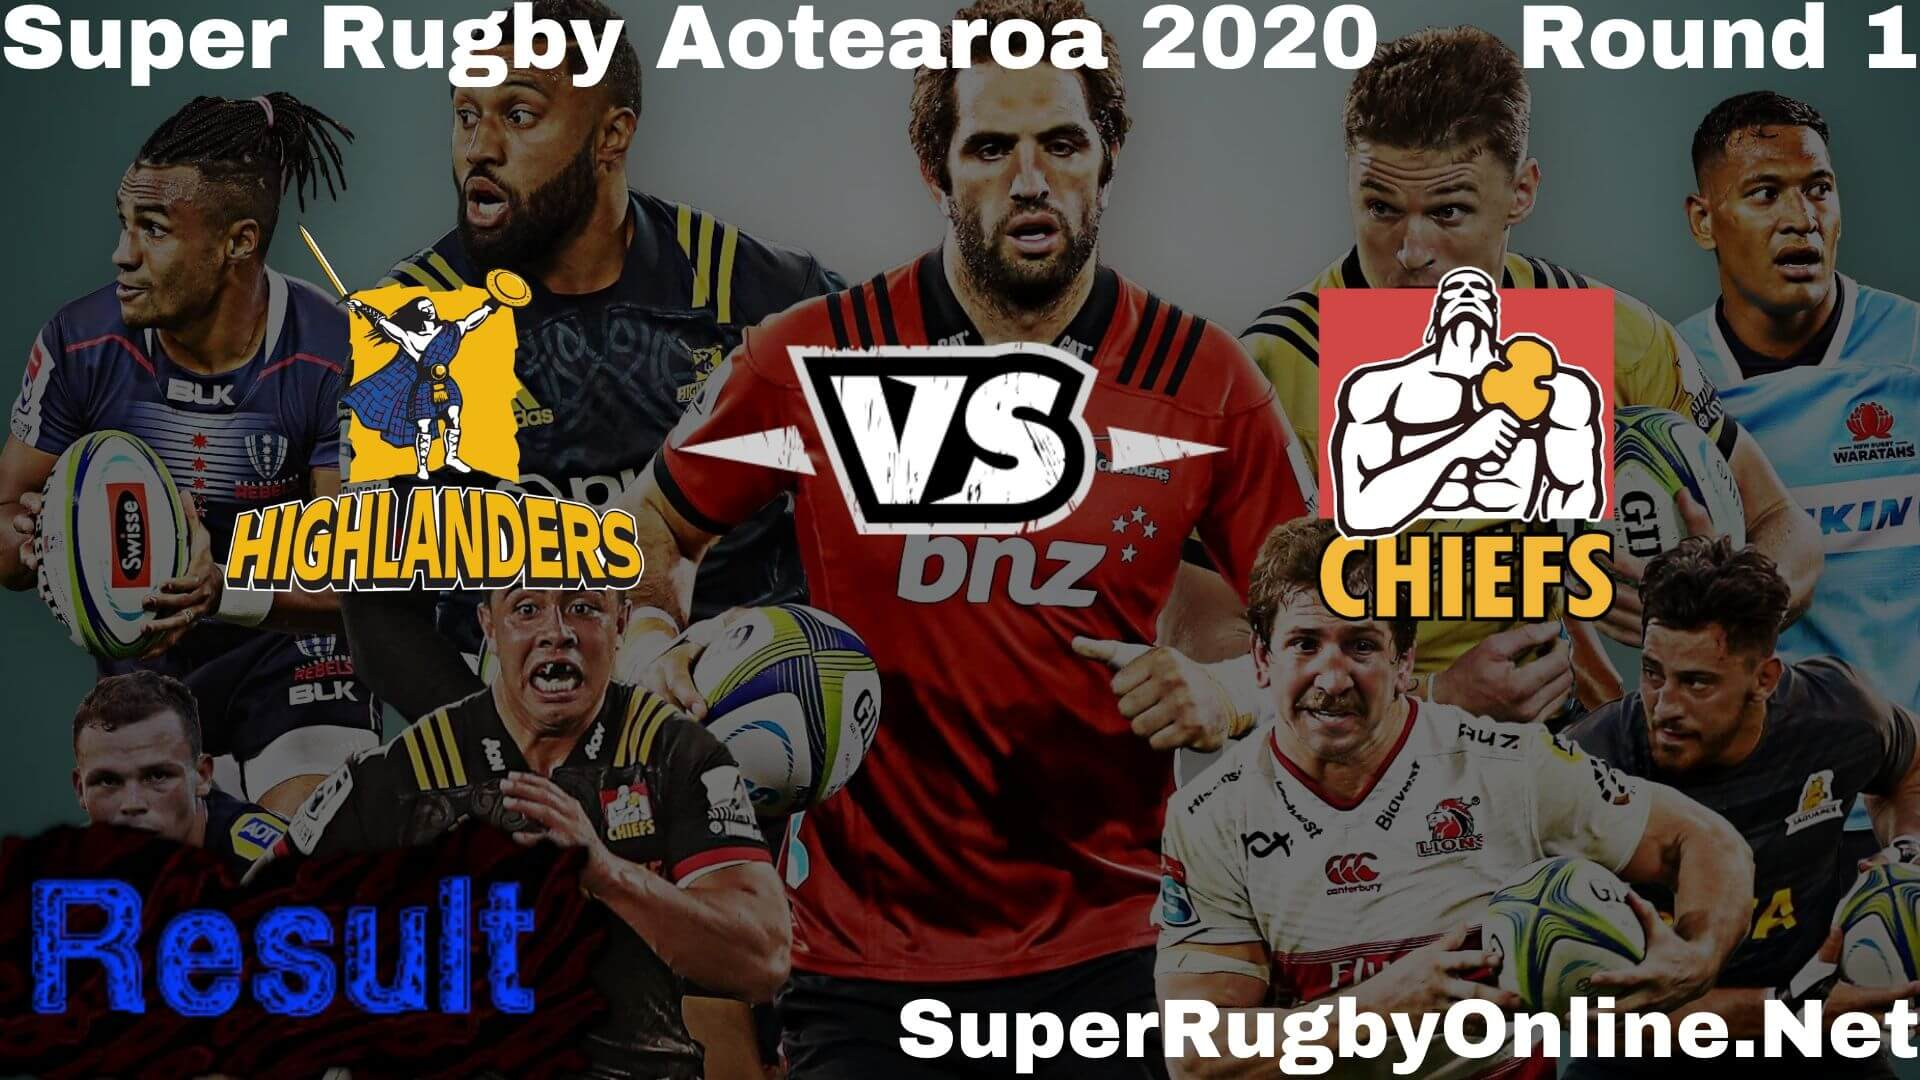 Highlanders Vs Chiefs Highlights Rd 1 Super Rugby 2020